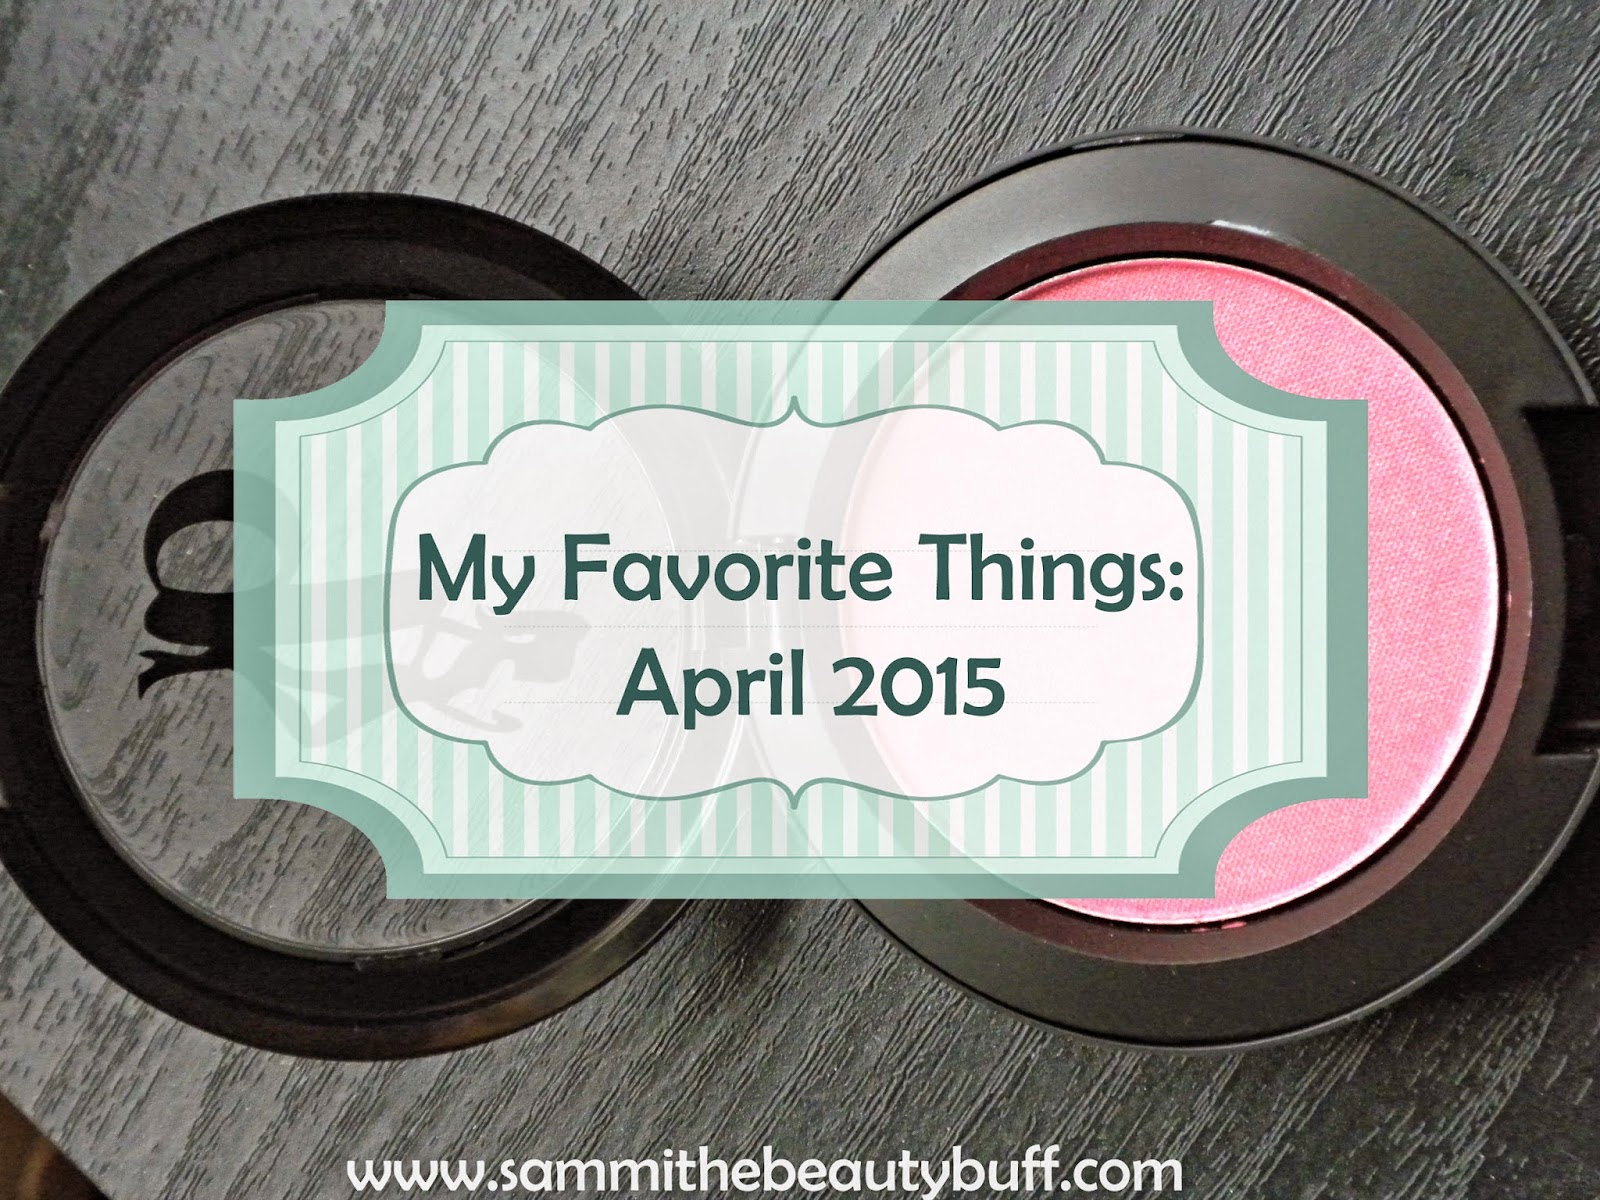 My Favorite Things: April 2015